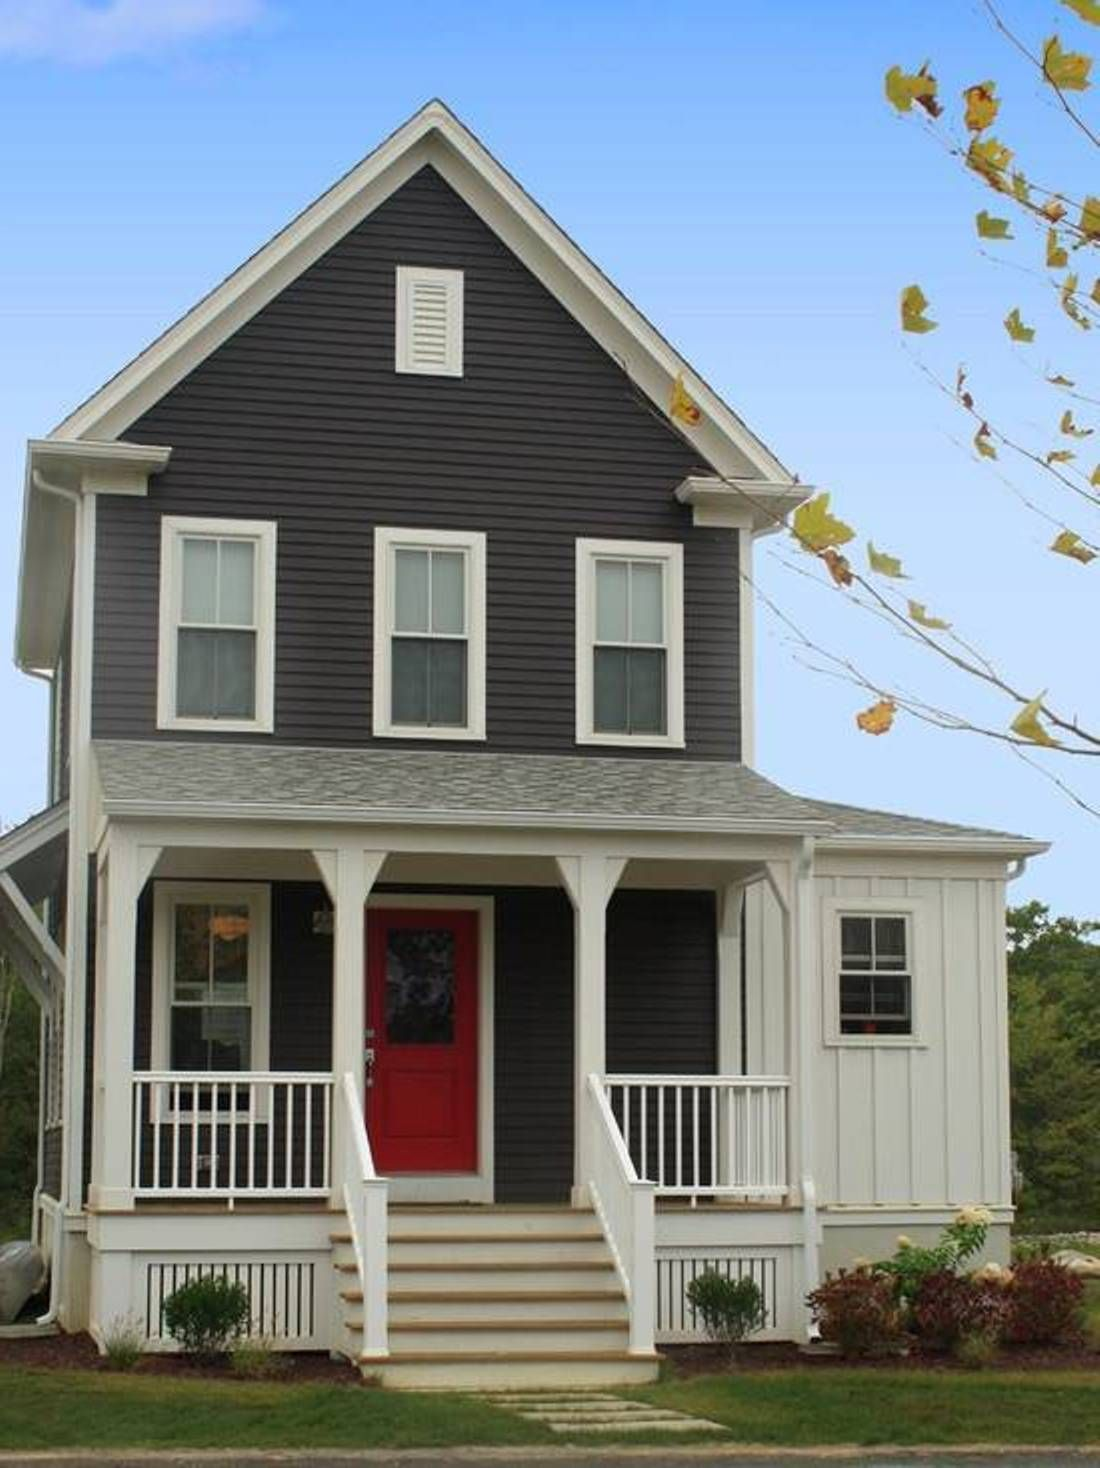 Combo exterior house paint color combinations selecting exterior house paint color combinations gallery designarthouse